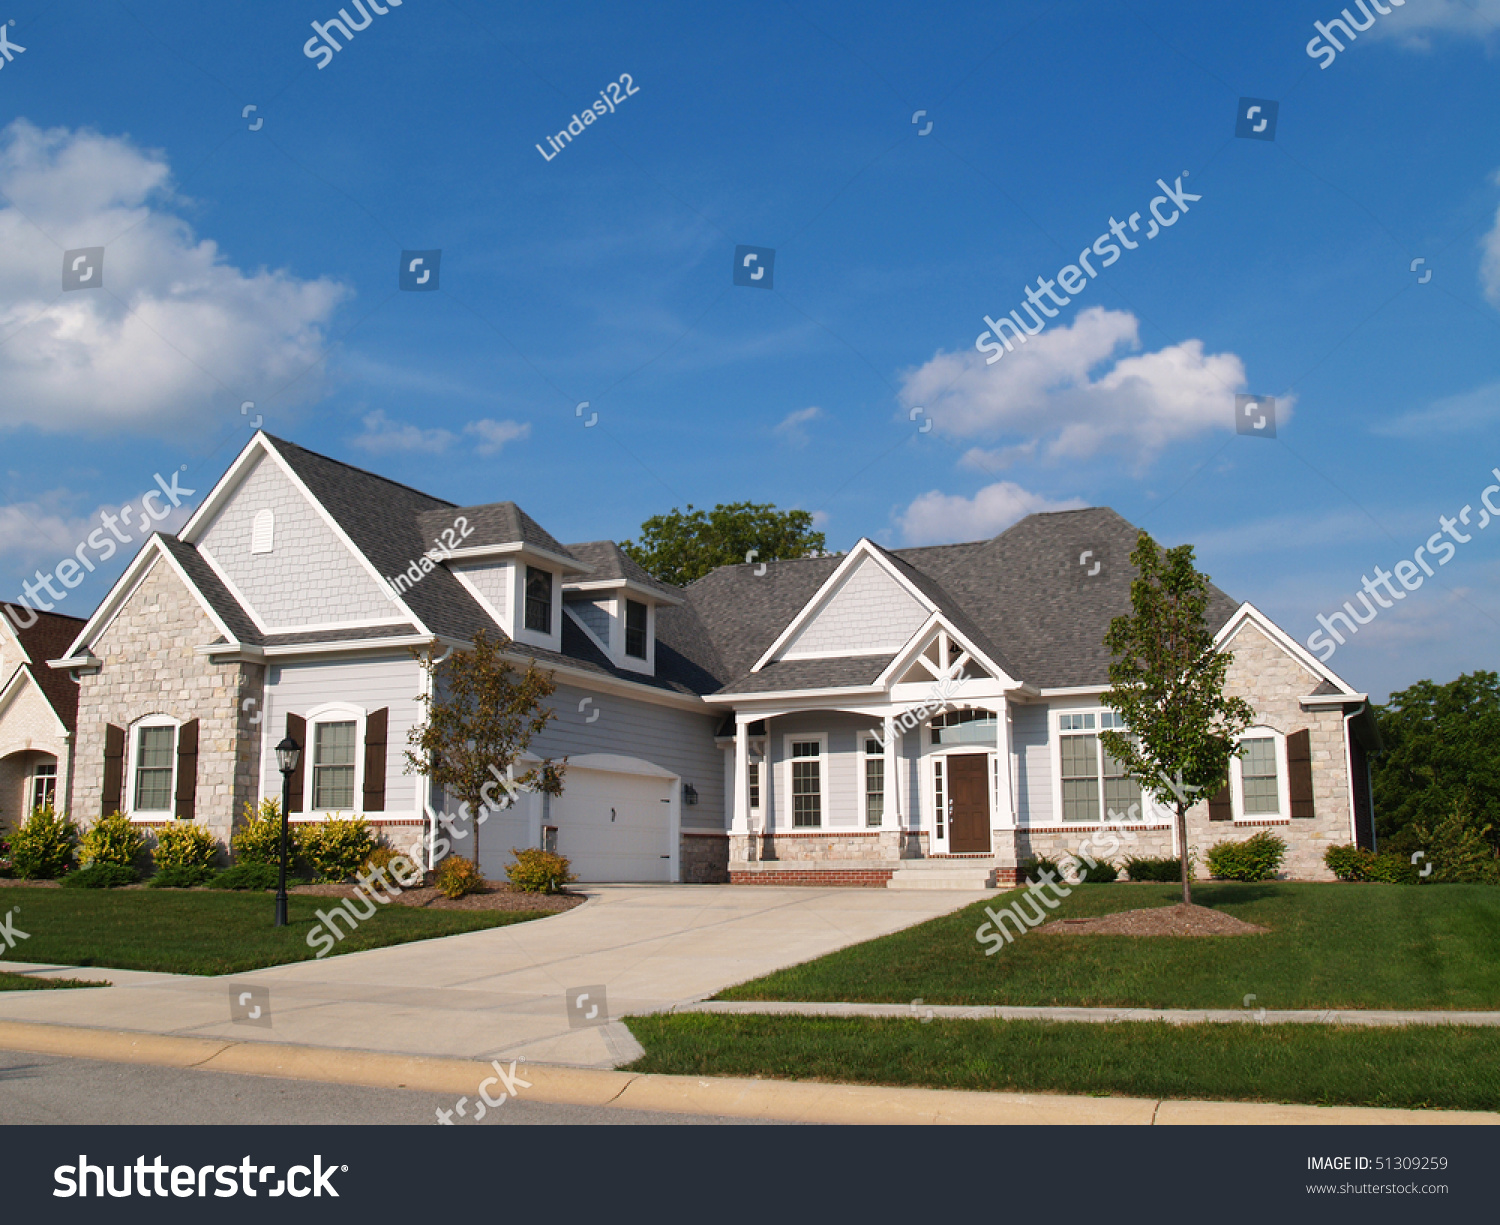 one story vinyl stone residential home stock photo 51309259 one story vinyl and stone residential home with garage in front containing plenty of copy space